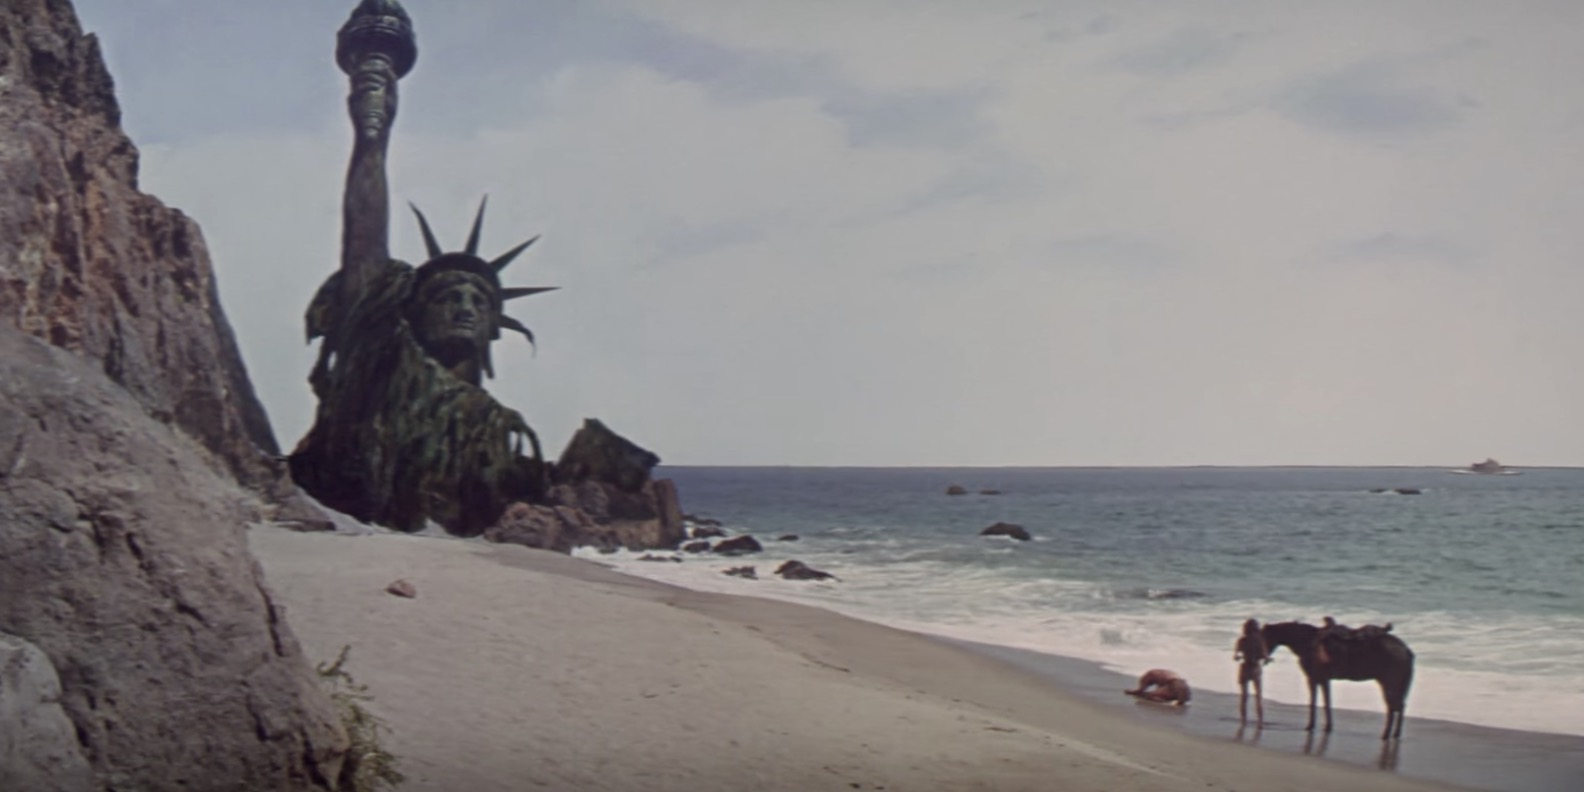 sci-fi movie end scene, movies, planet of the apes